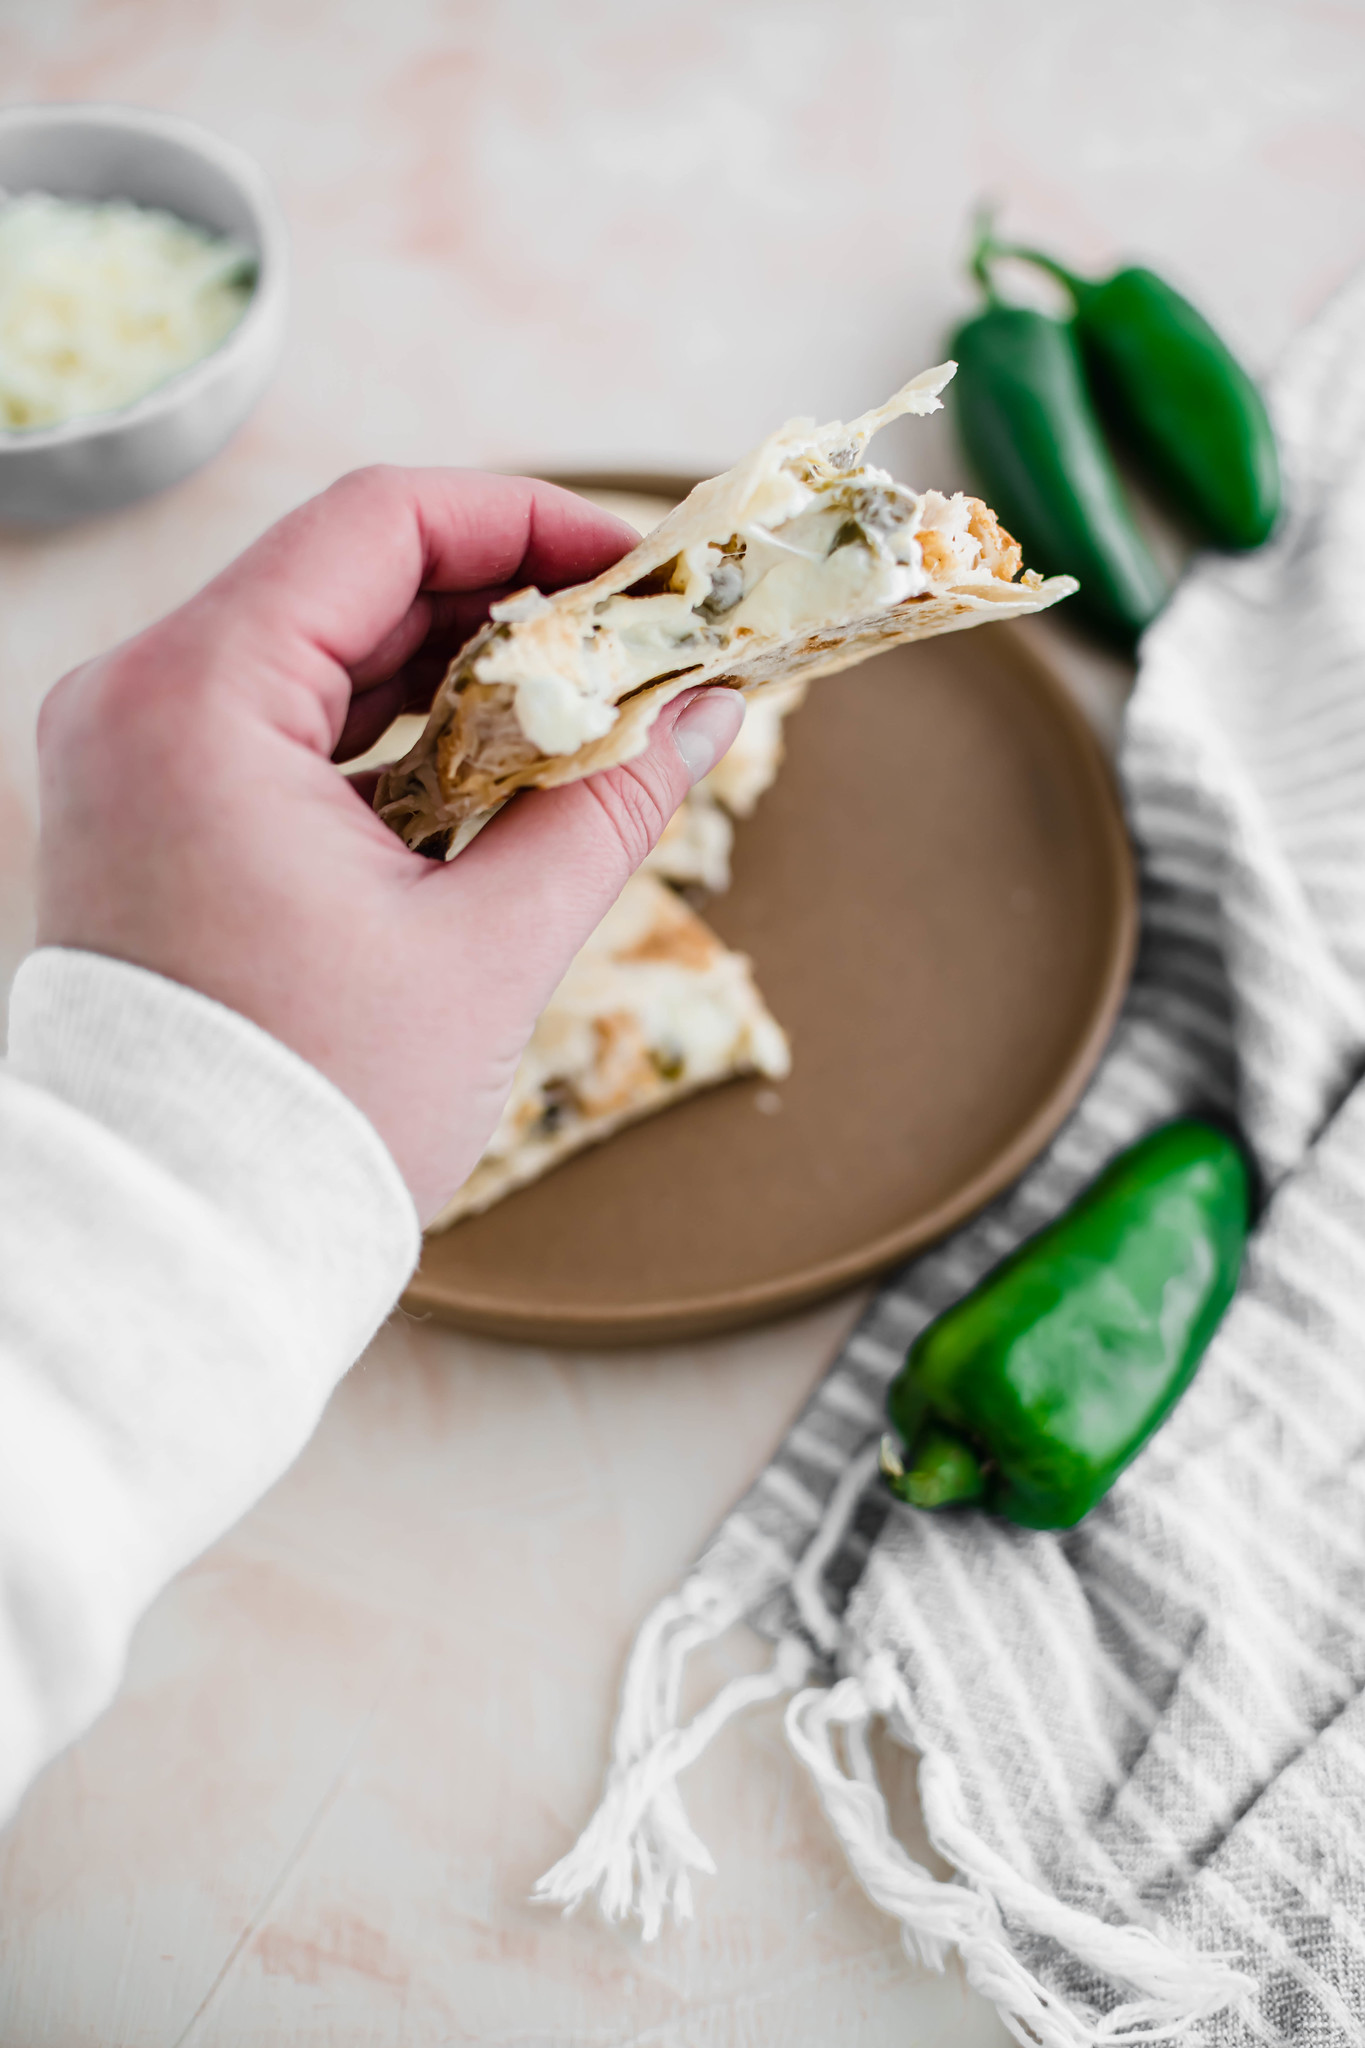 Hand holding jalapeno popper quesadilla with a bite out of it.